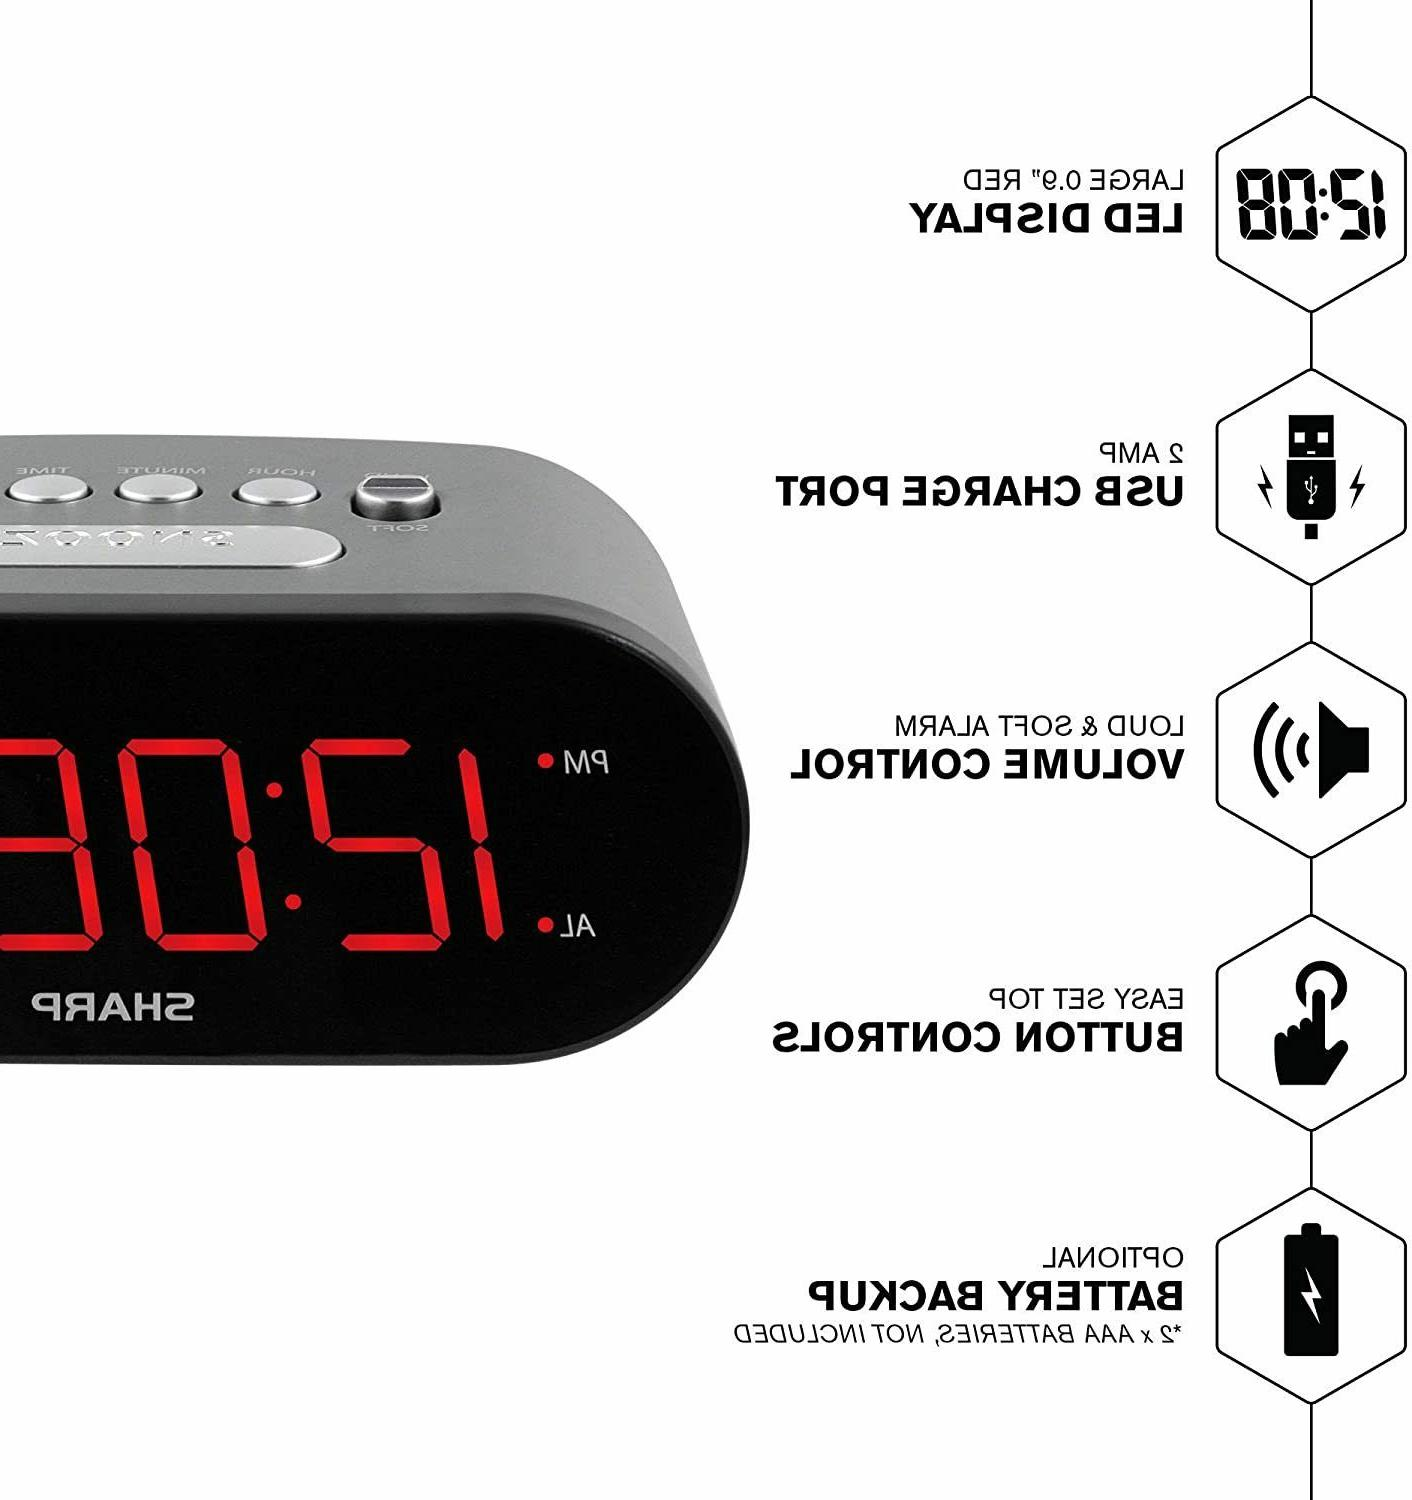 Sharp Electric Clock w/ 2 AMP High-Speed LED Display